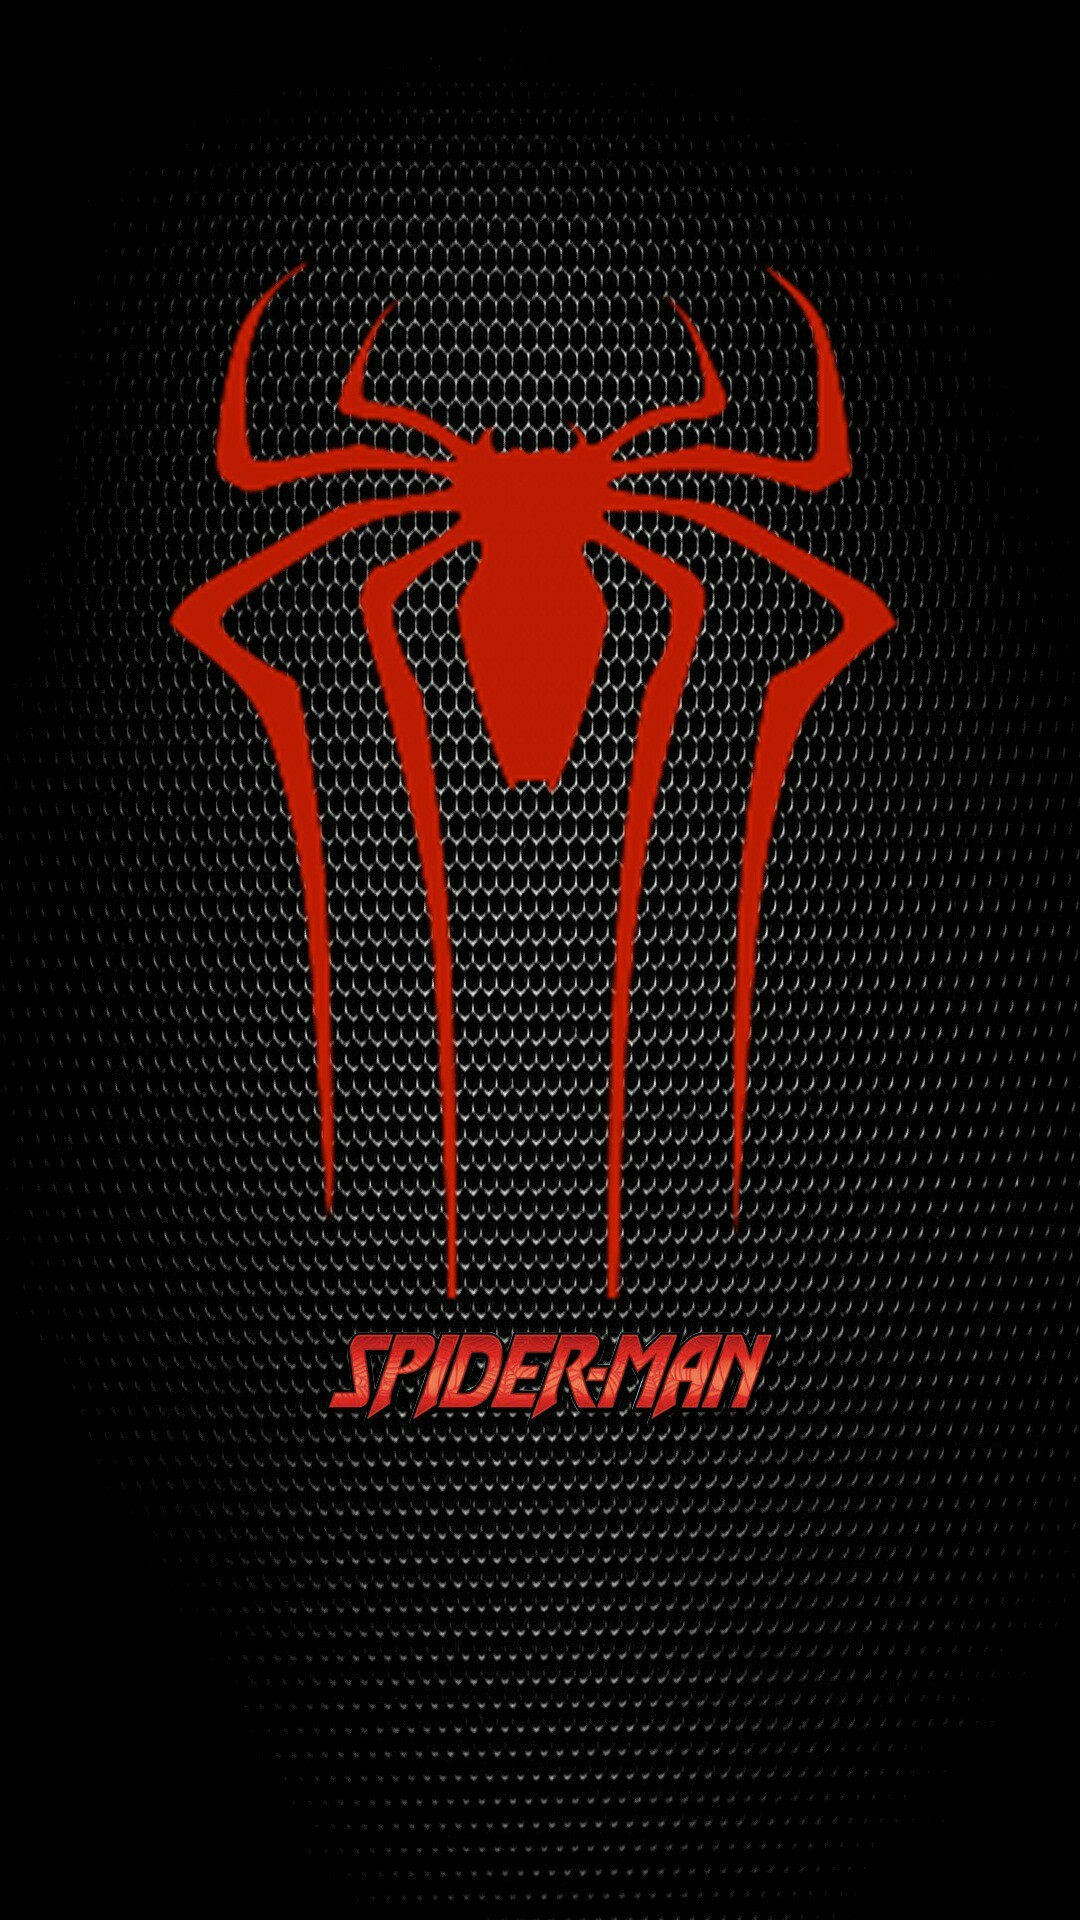 Spiderman logo wallpaper wallpapertag - Iphone 6 spiderman wallpaper ...